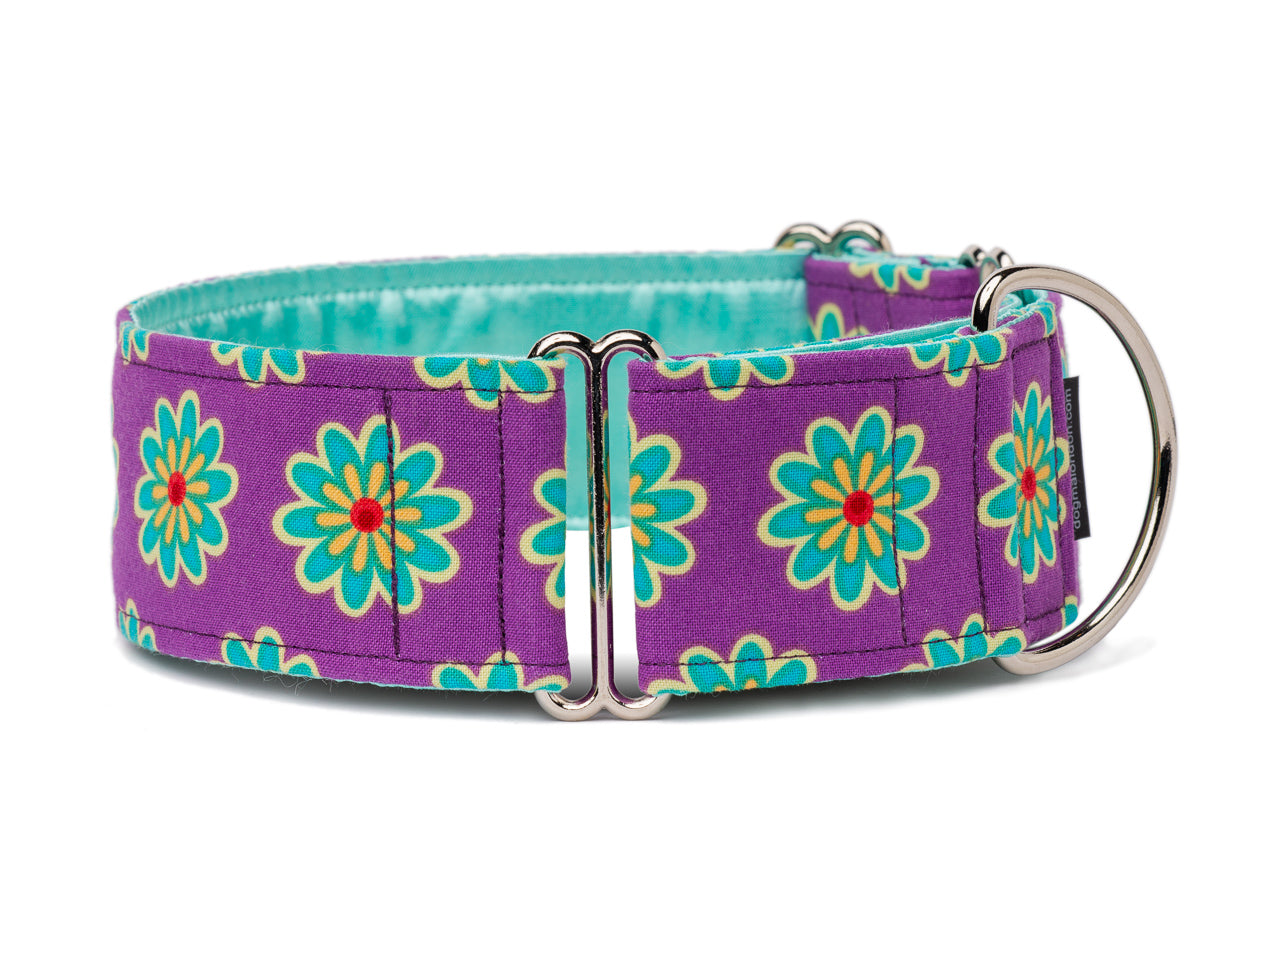 Cheerful blue flowers on a pretty purple collar will brighten up any pooch's day!